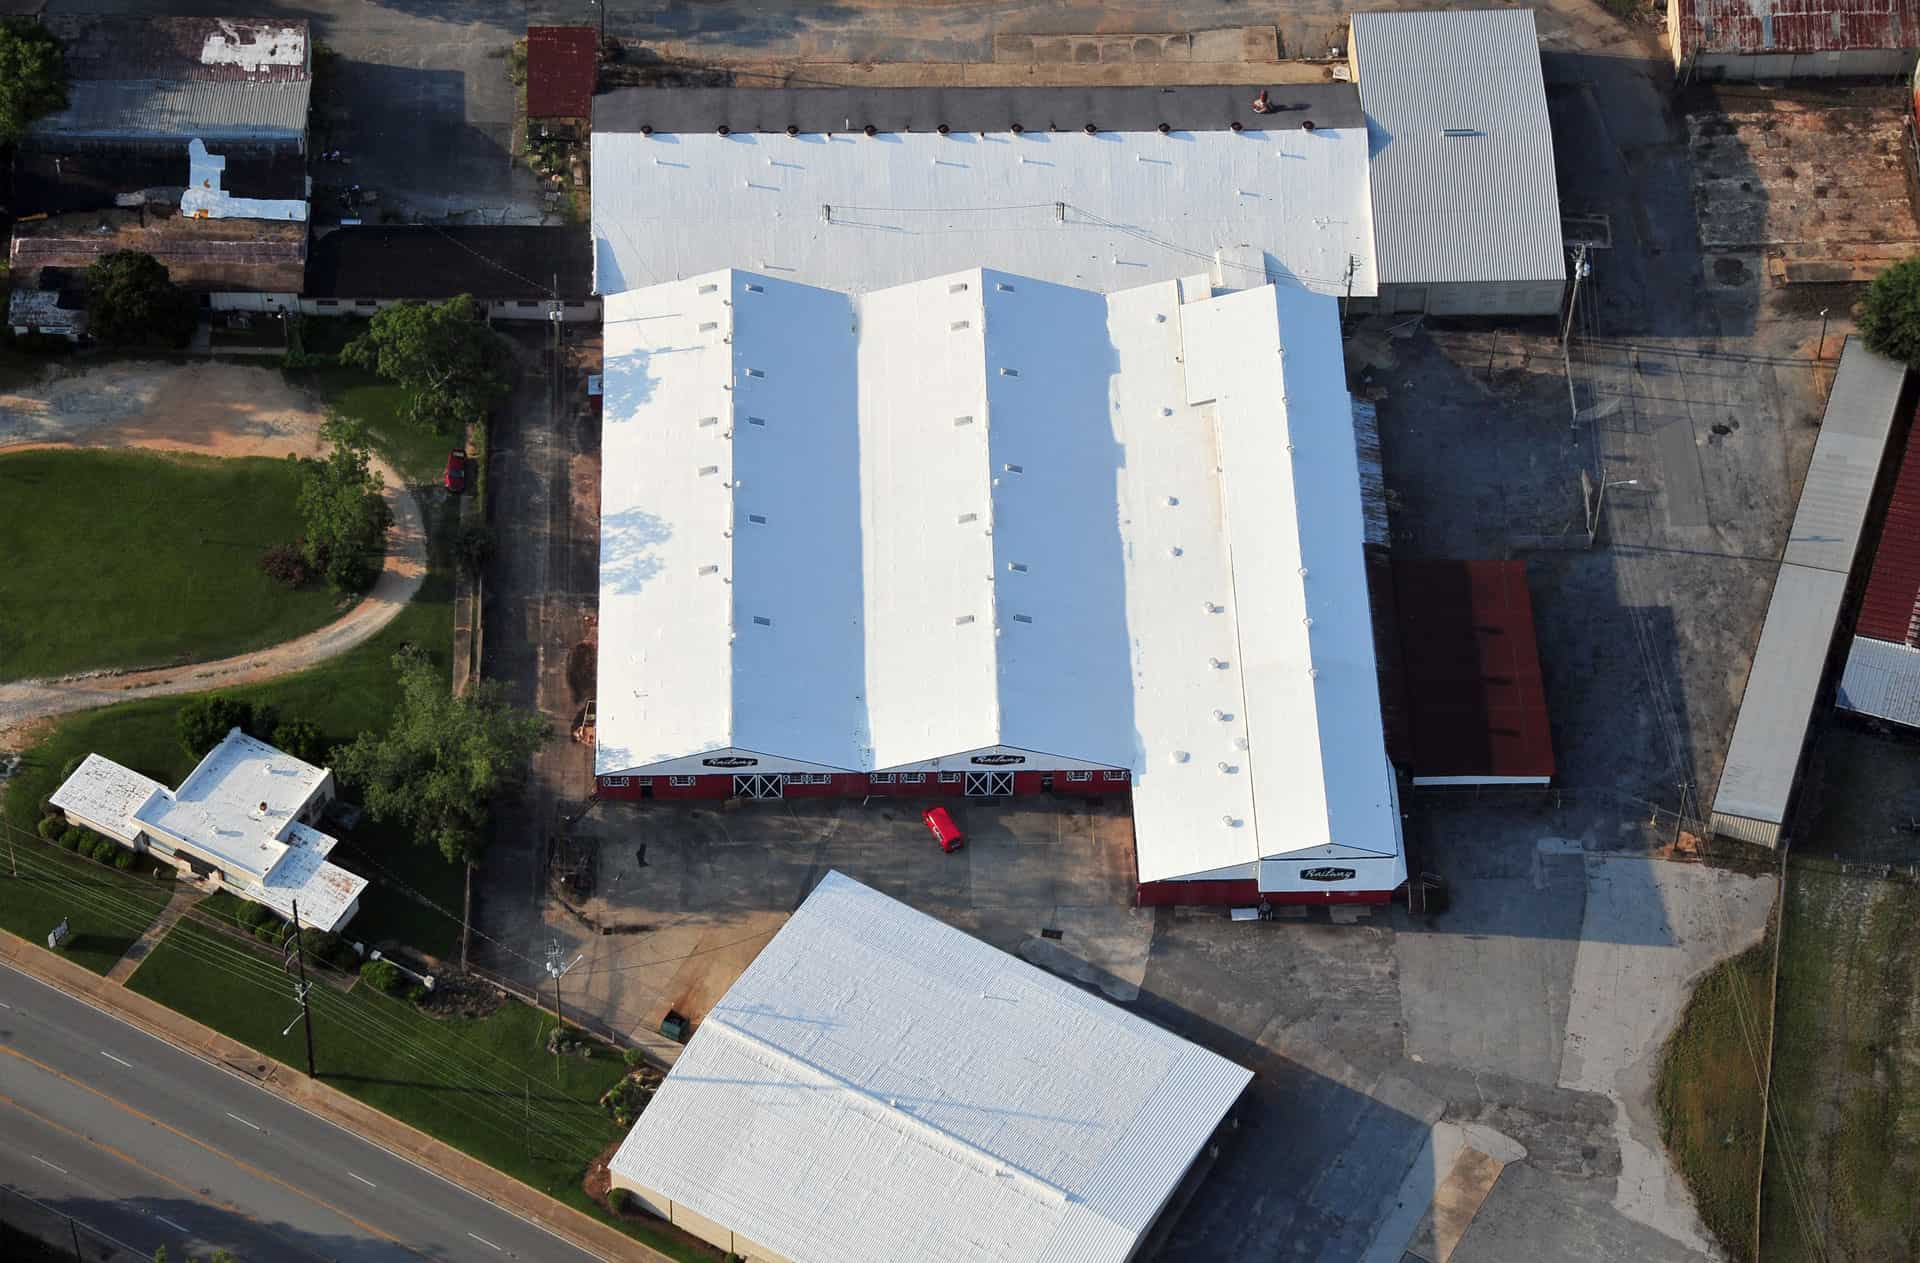 Gallery Commercial Roofing Atlanta Yoder S Roofing